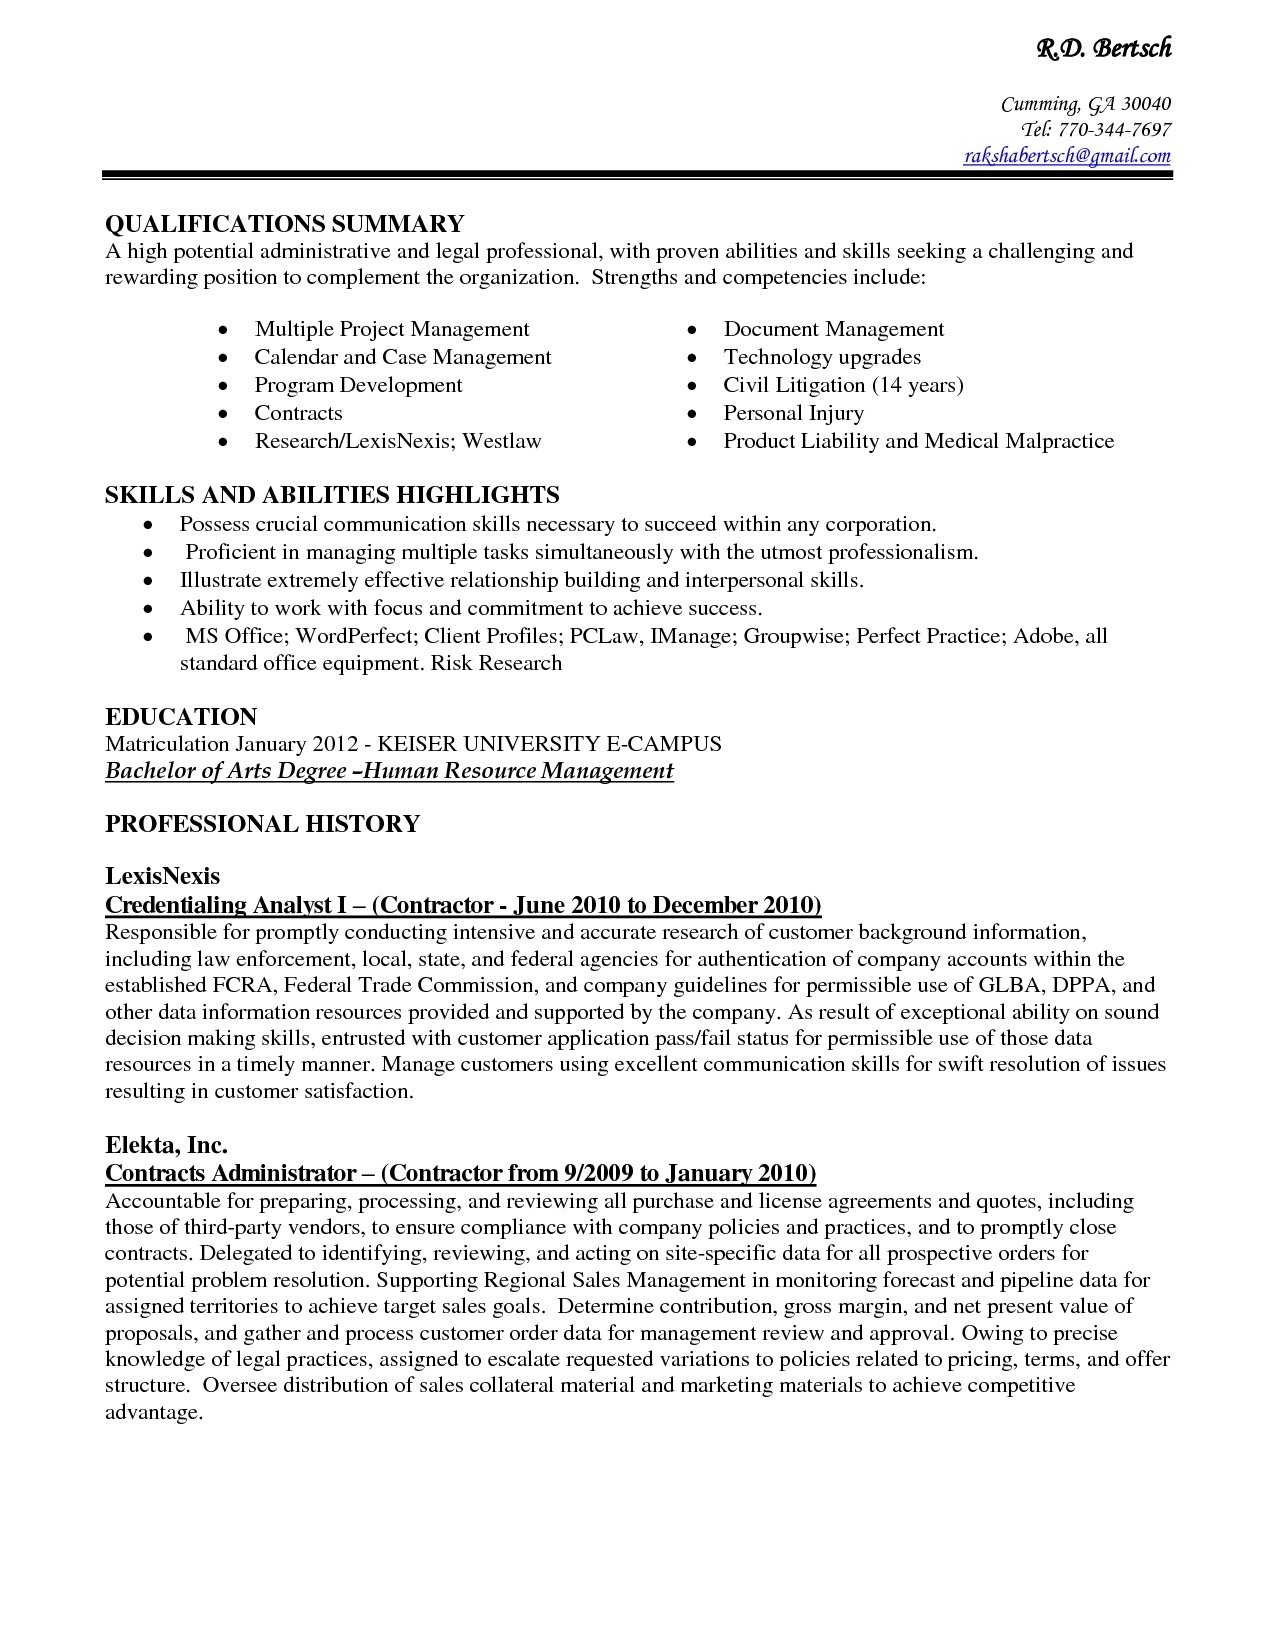 Assistant Branch Manager Resume Resume For Office Assistant Examples Example